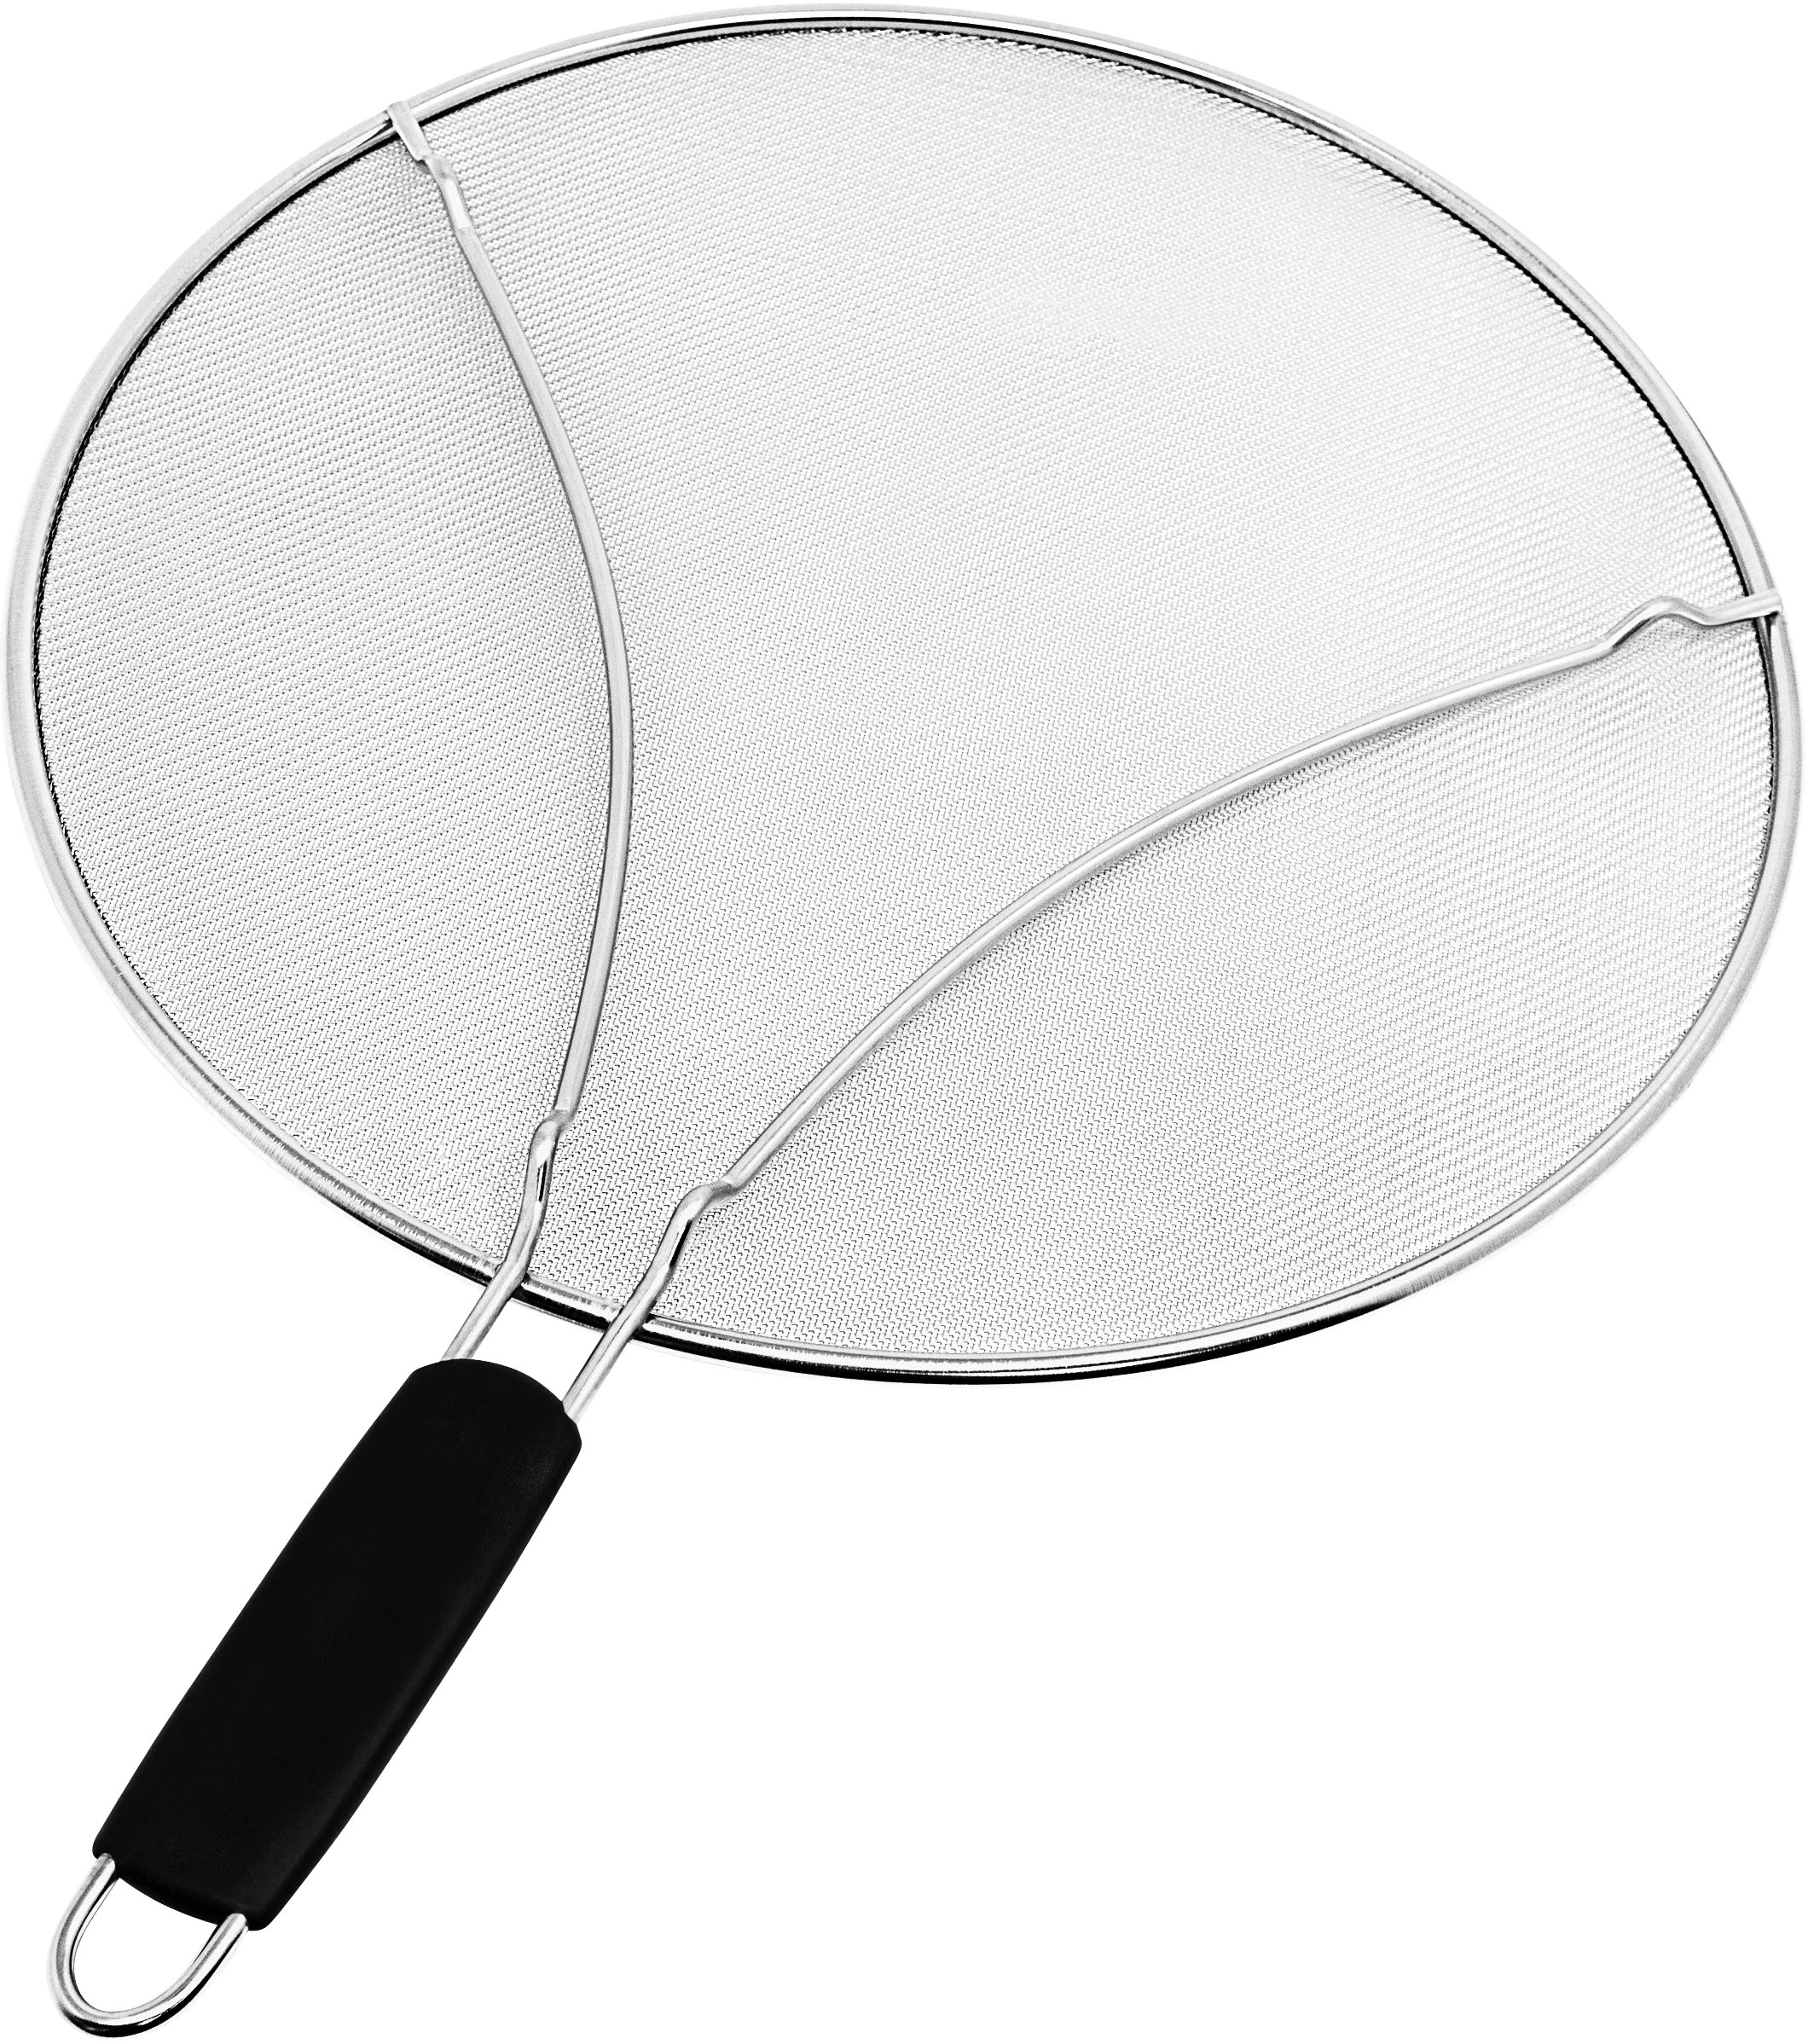 "Splatter Screen for Frying Pan – Large 13"" Stainless Steel Grease Guard Shield and Catcher – Stops Almost 100% of Hot Oil Splash – Keeps Stove and Pans Clean & Prevents Burns When Cooking"